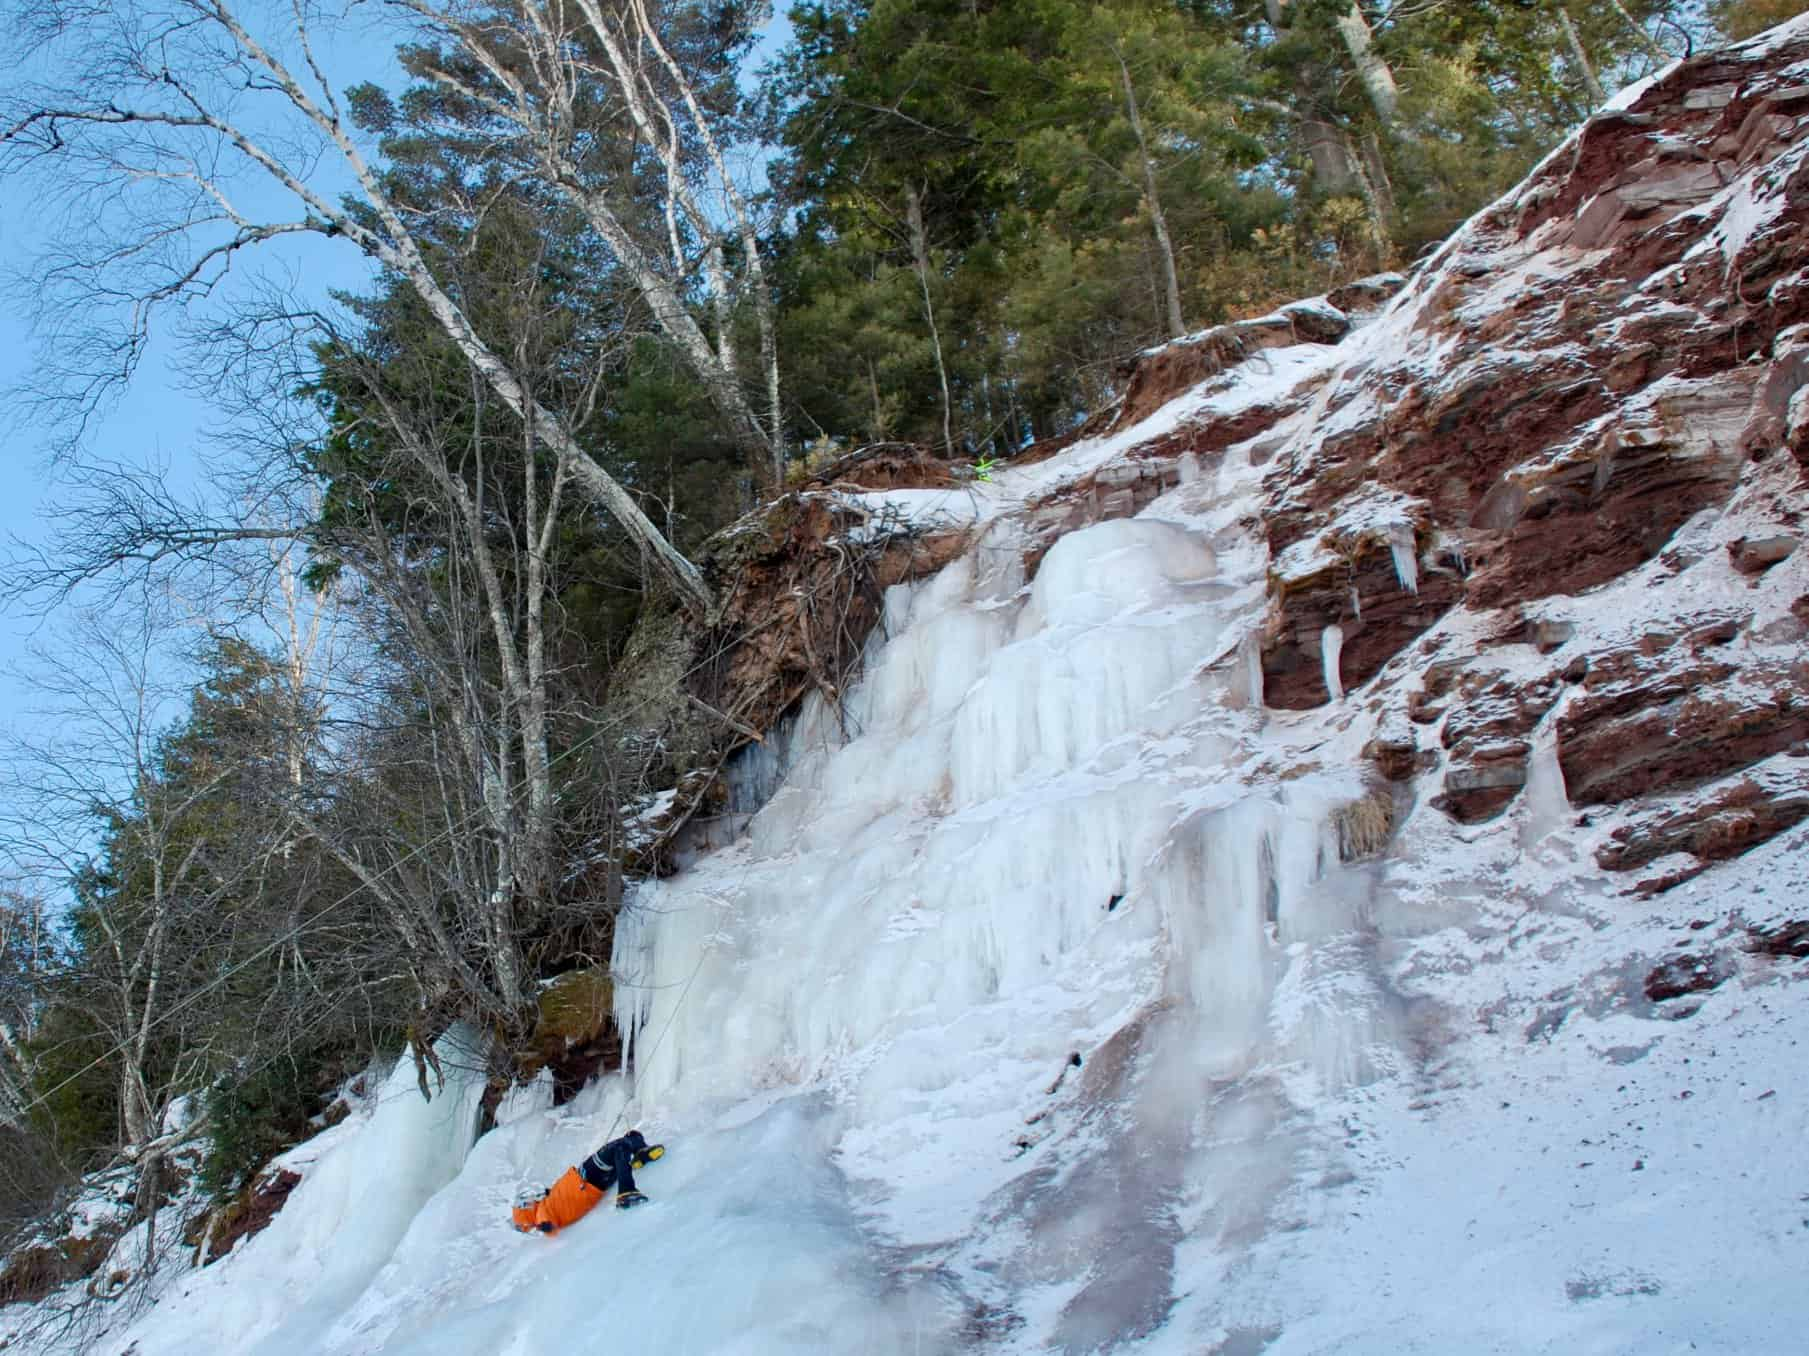 Inexperience can beat experience - Joseph Lalonde falling off of an ice climb